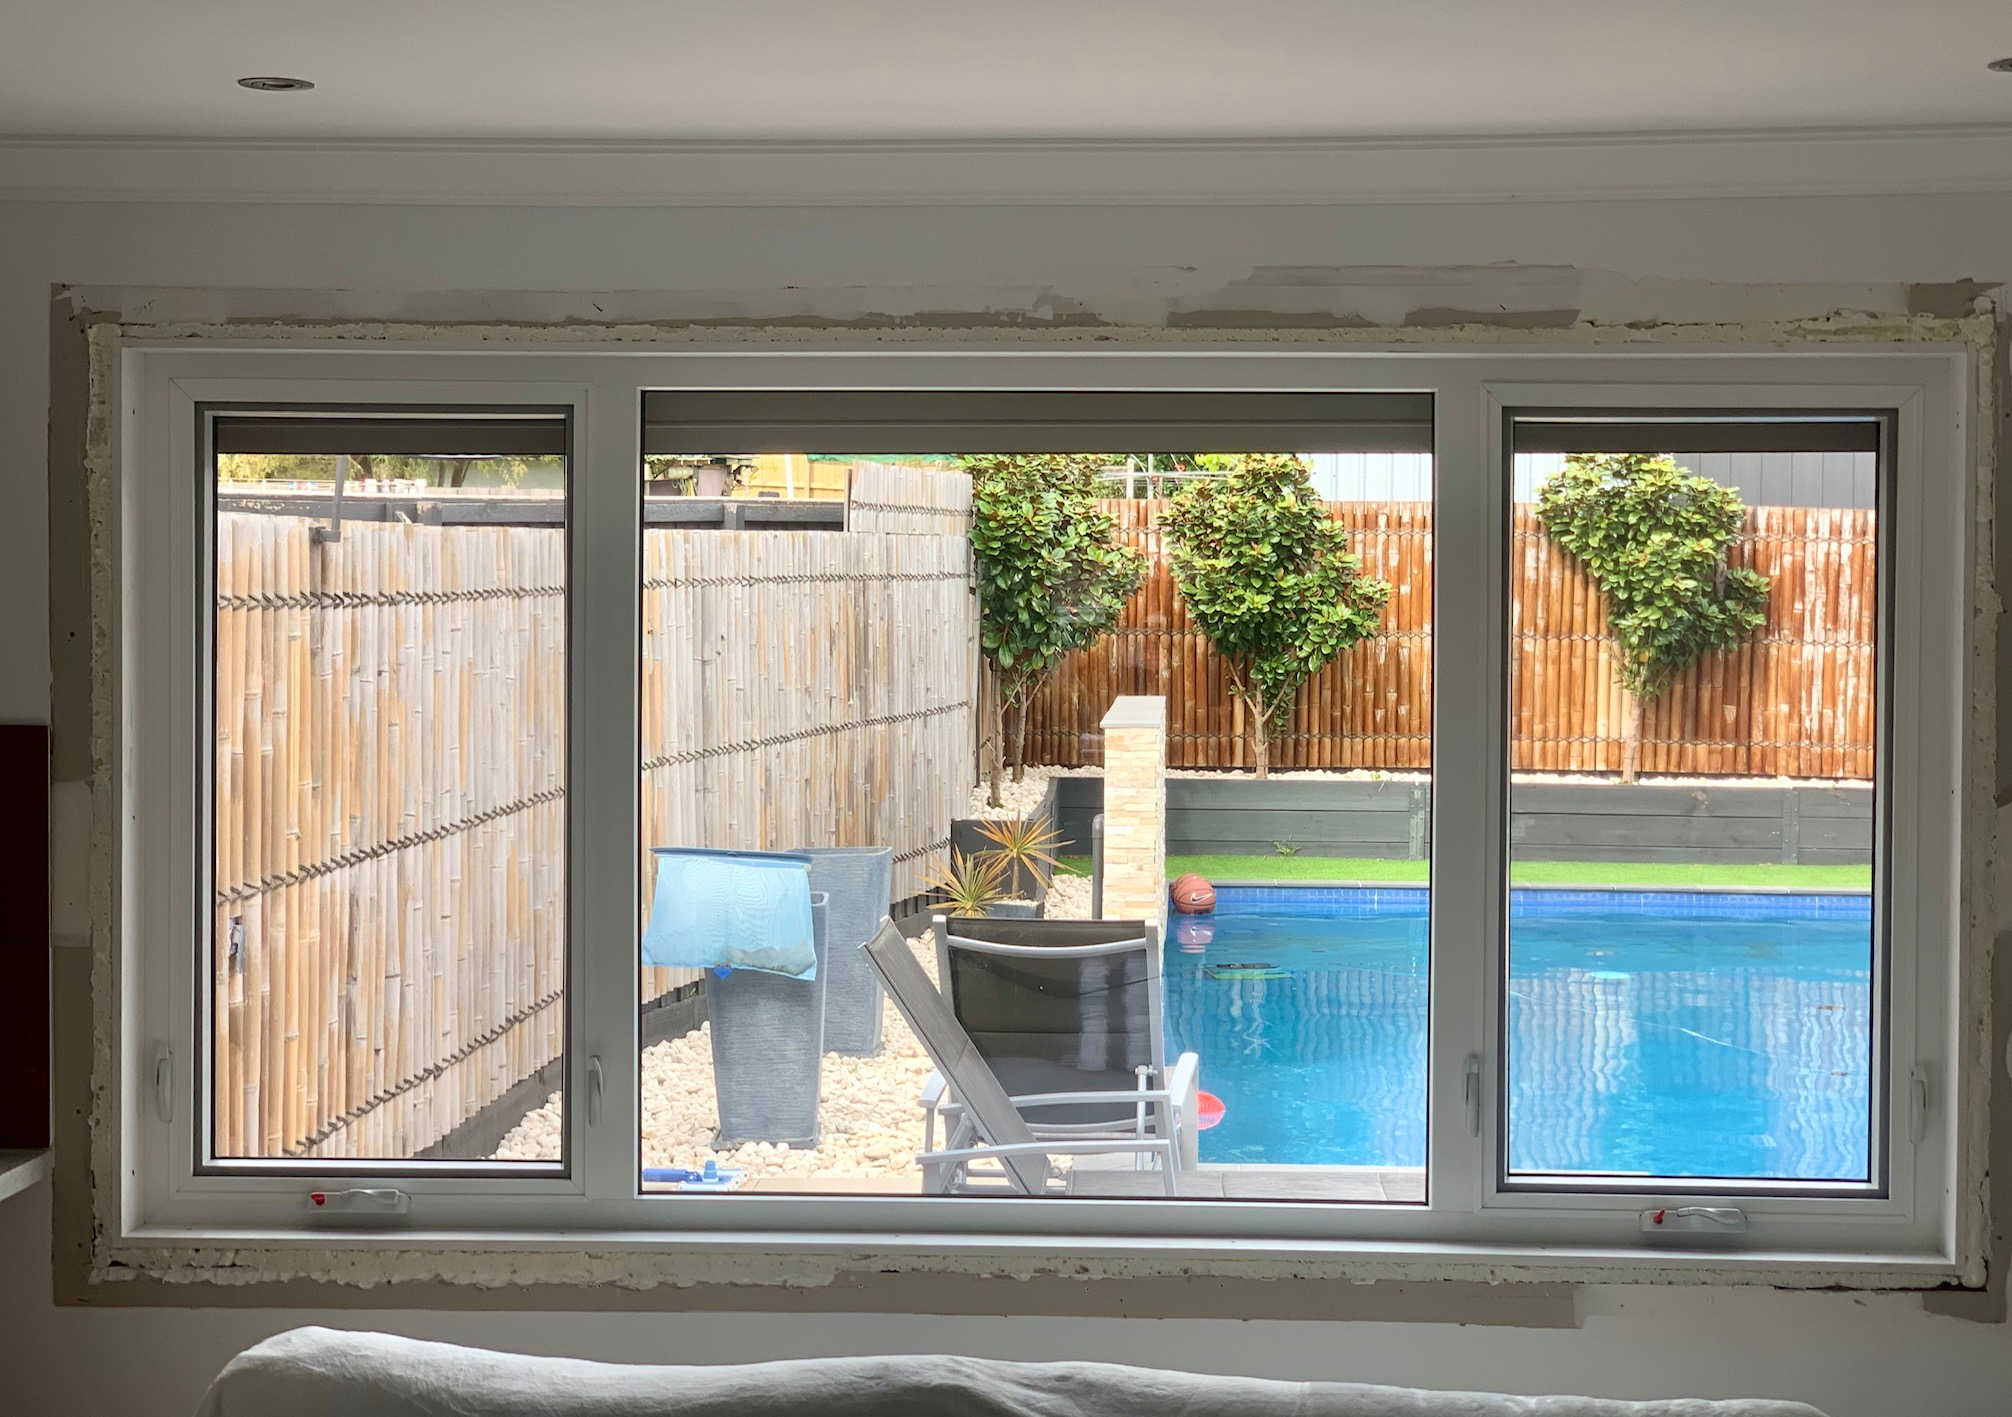 Tropical White/Anthracite Grey awning windows by Astellite